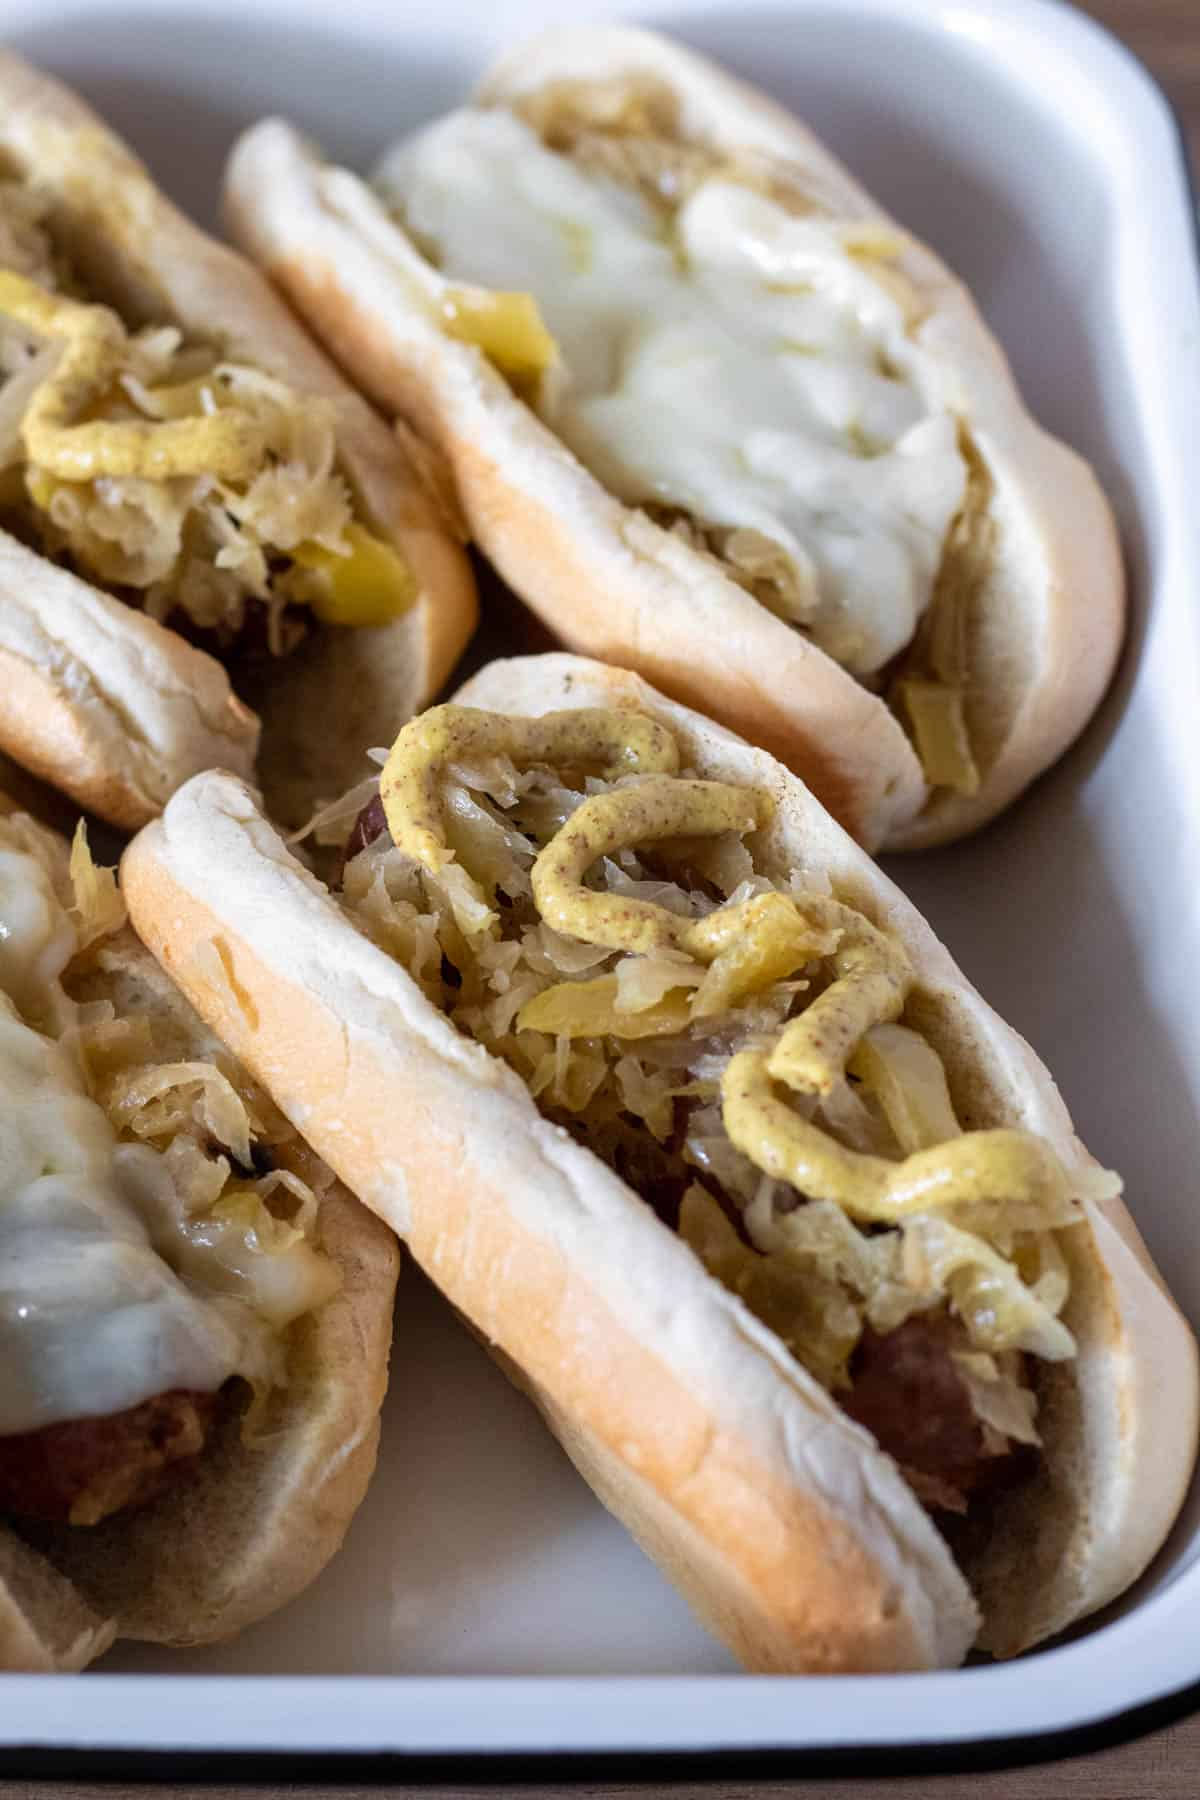 Closup of brats on buns with mustard and melted cheese.